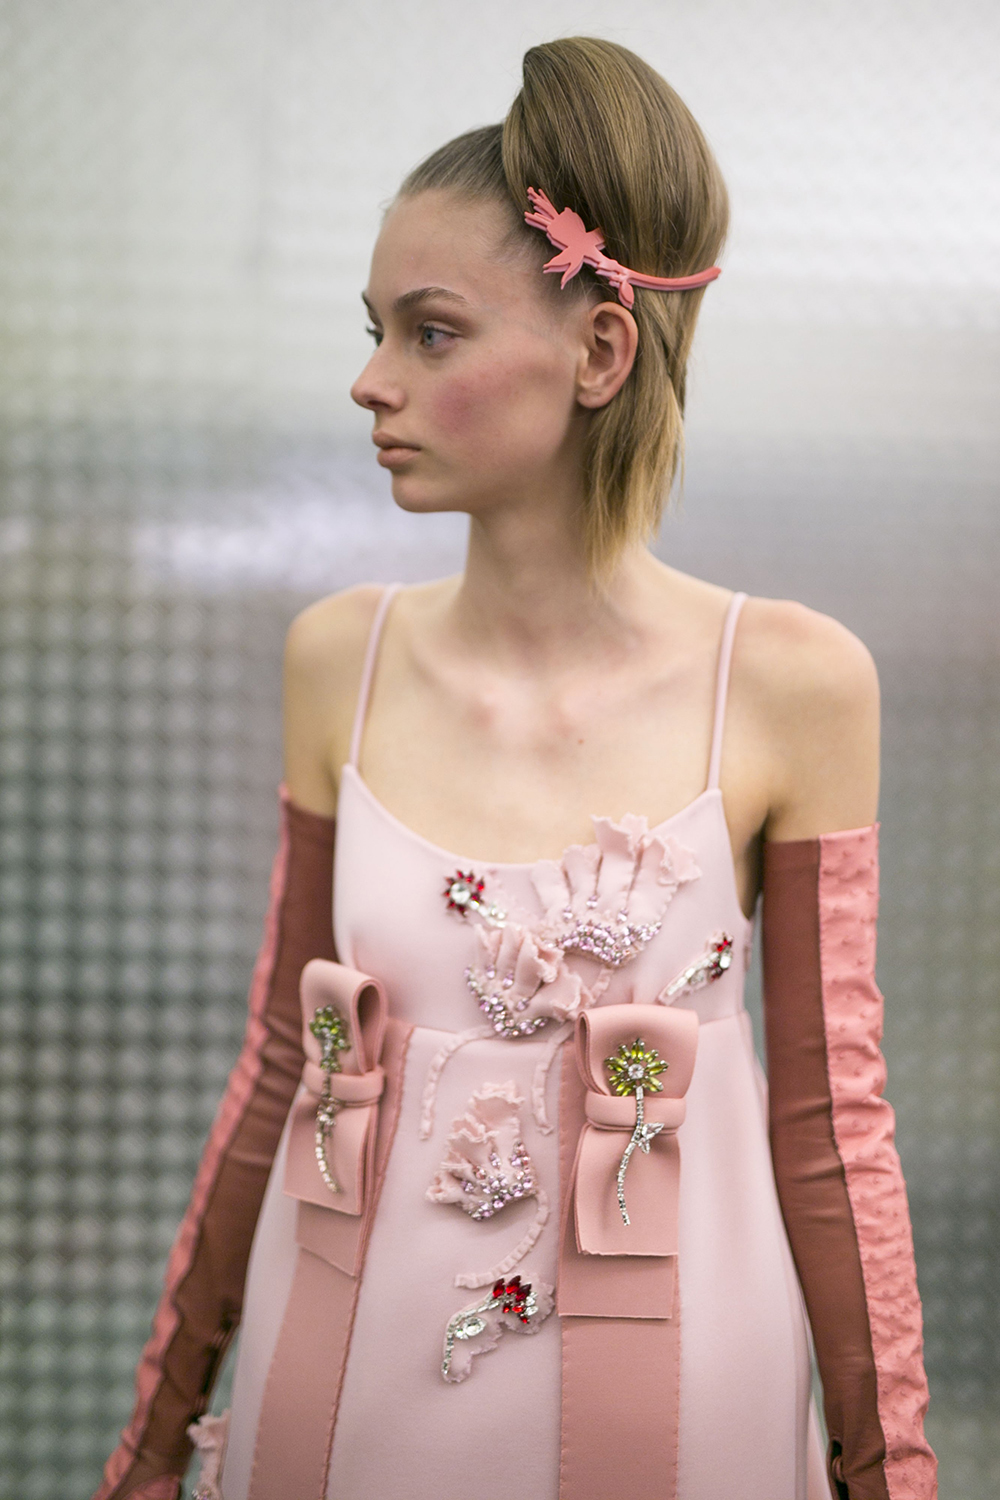 Prada_Backstage_Ready_to_Wear_Fall_Winter_2015_16_Milano_February_2015 PHOTO: EAST NEWS / ZEPPELIN